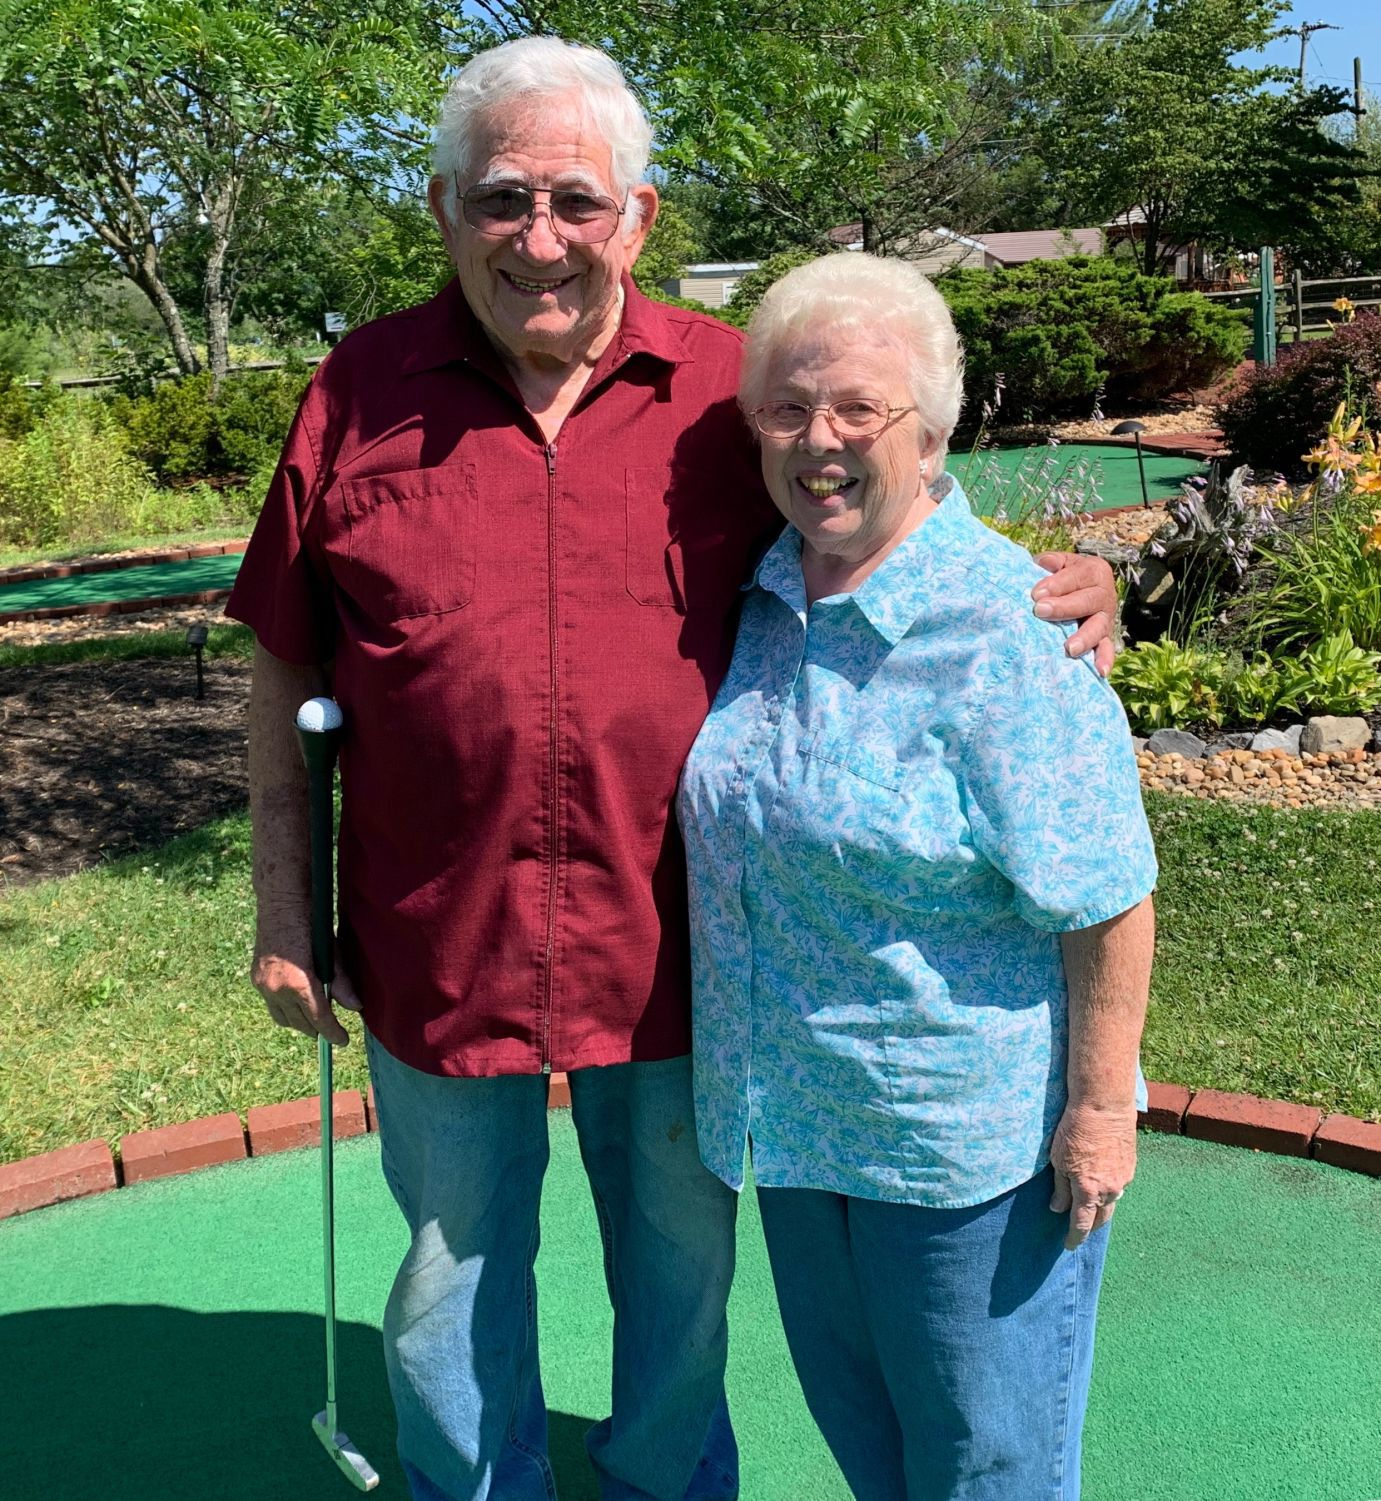 Miniature golf course owners closing business as they retire